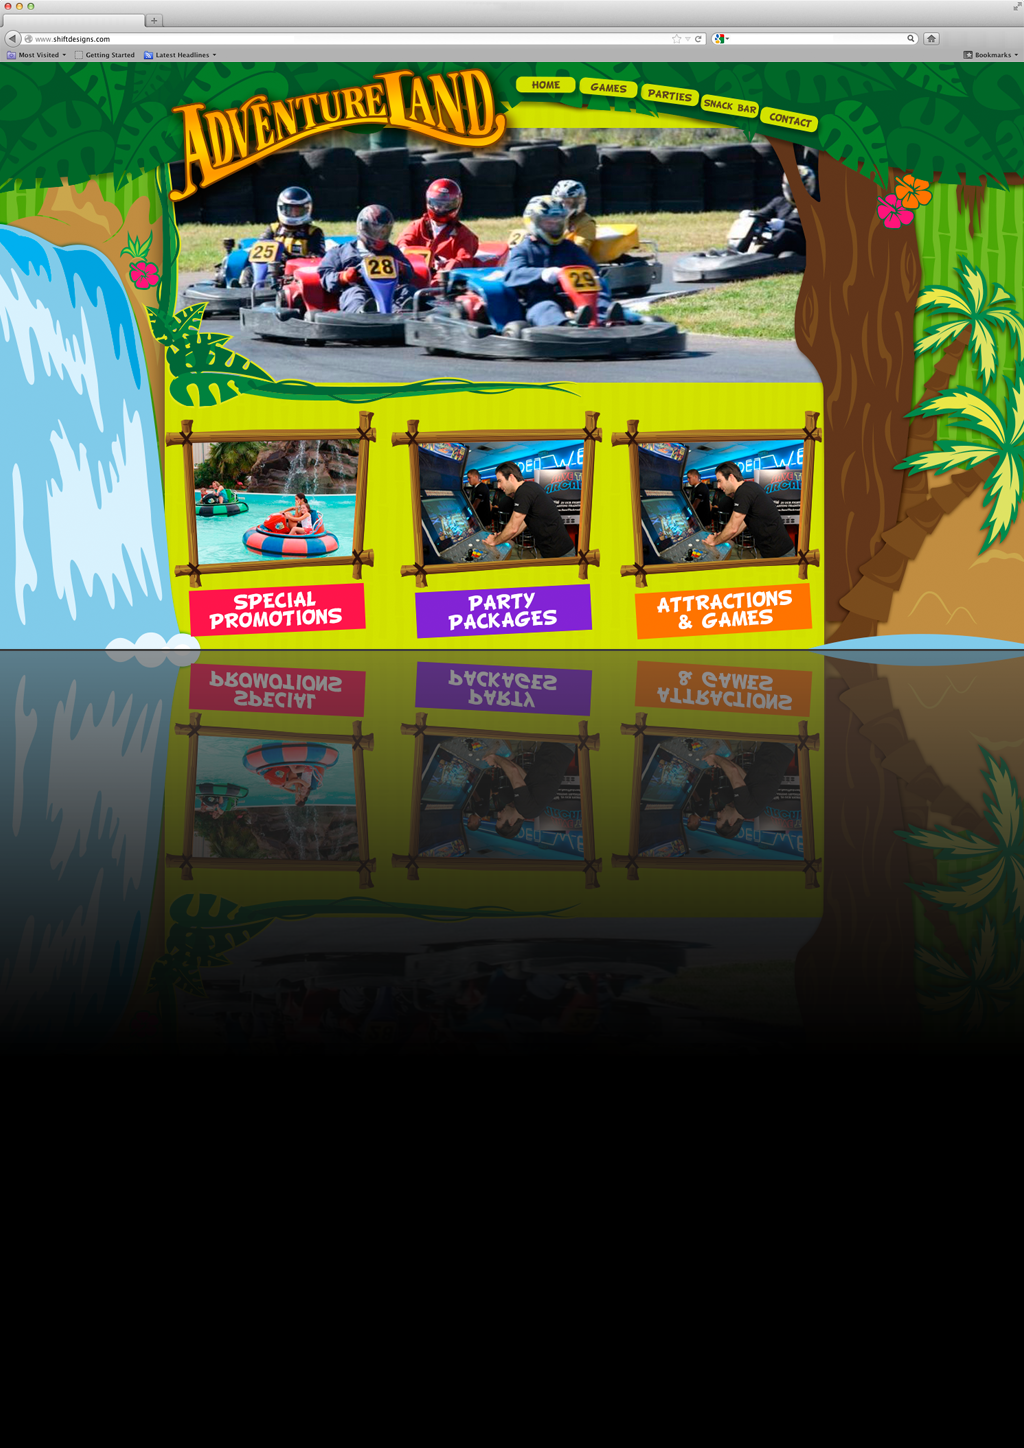 adventureland-website